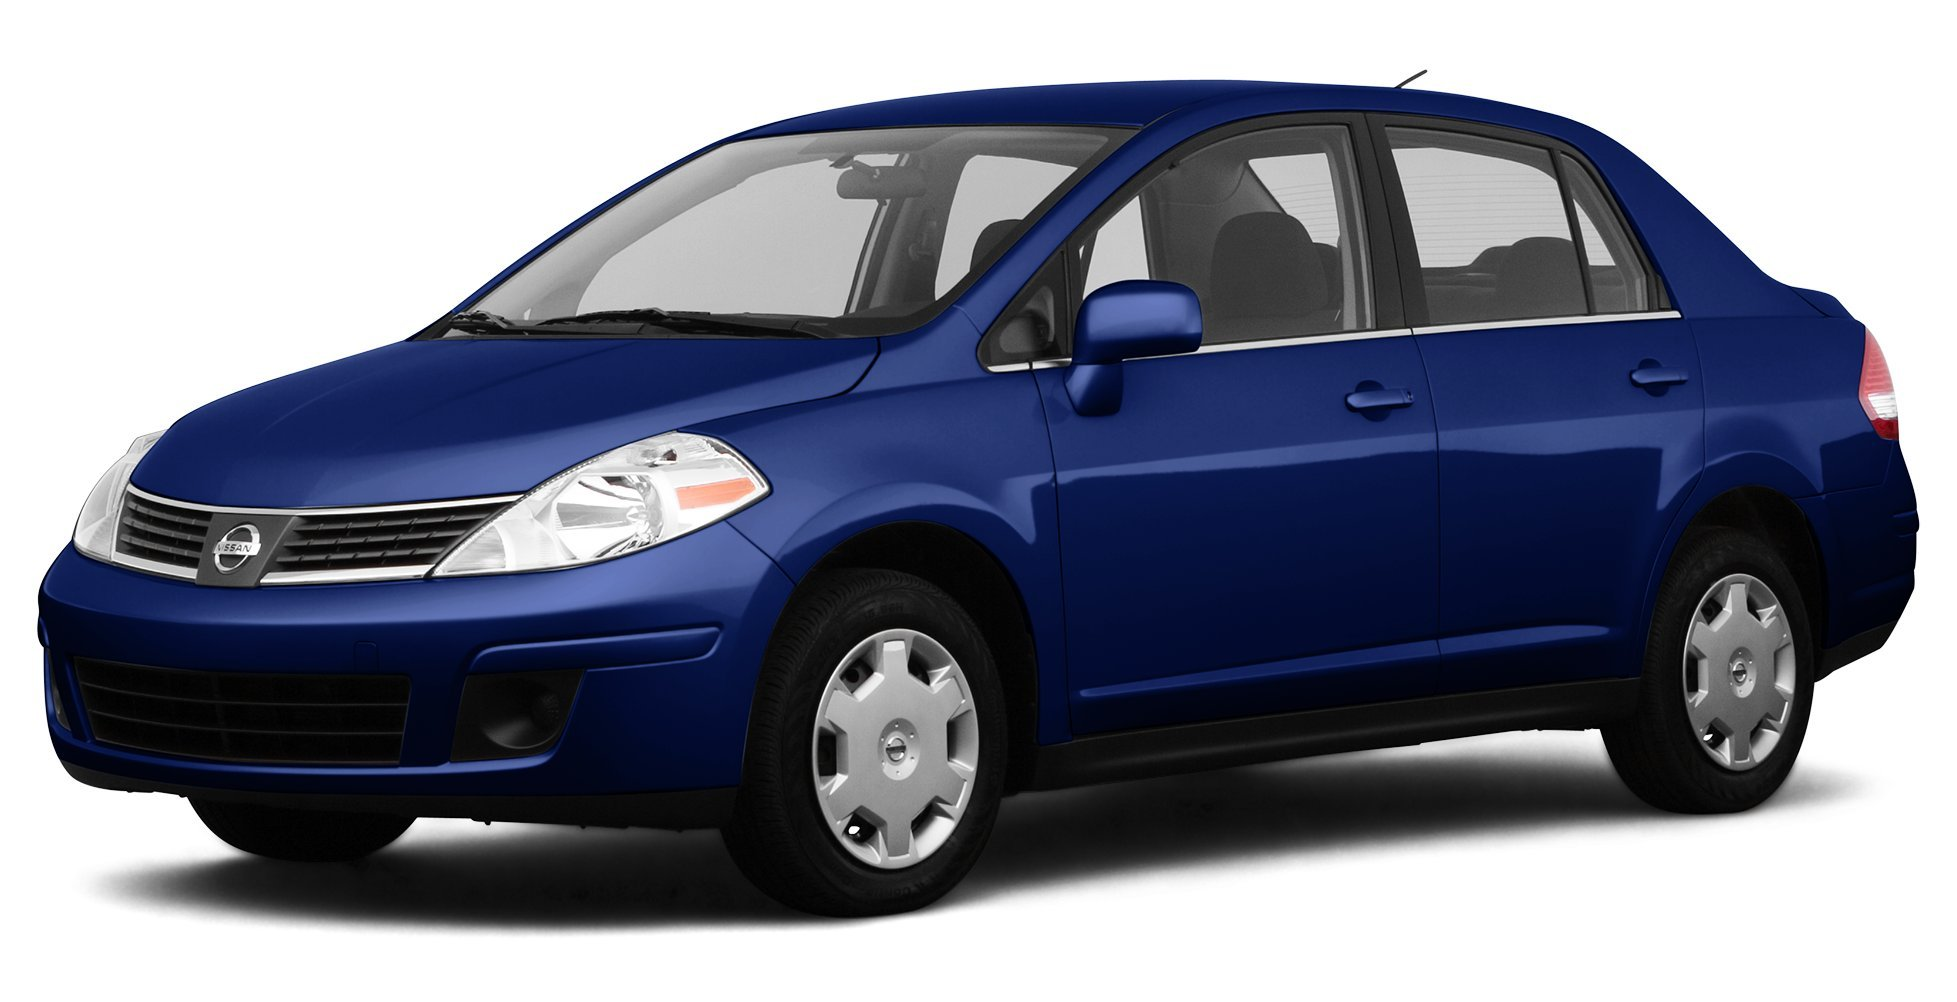 2007 nissan versa reviews images and specs vehicles. Black Bedroom Furniture Sets. Home Design Ideas